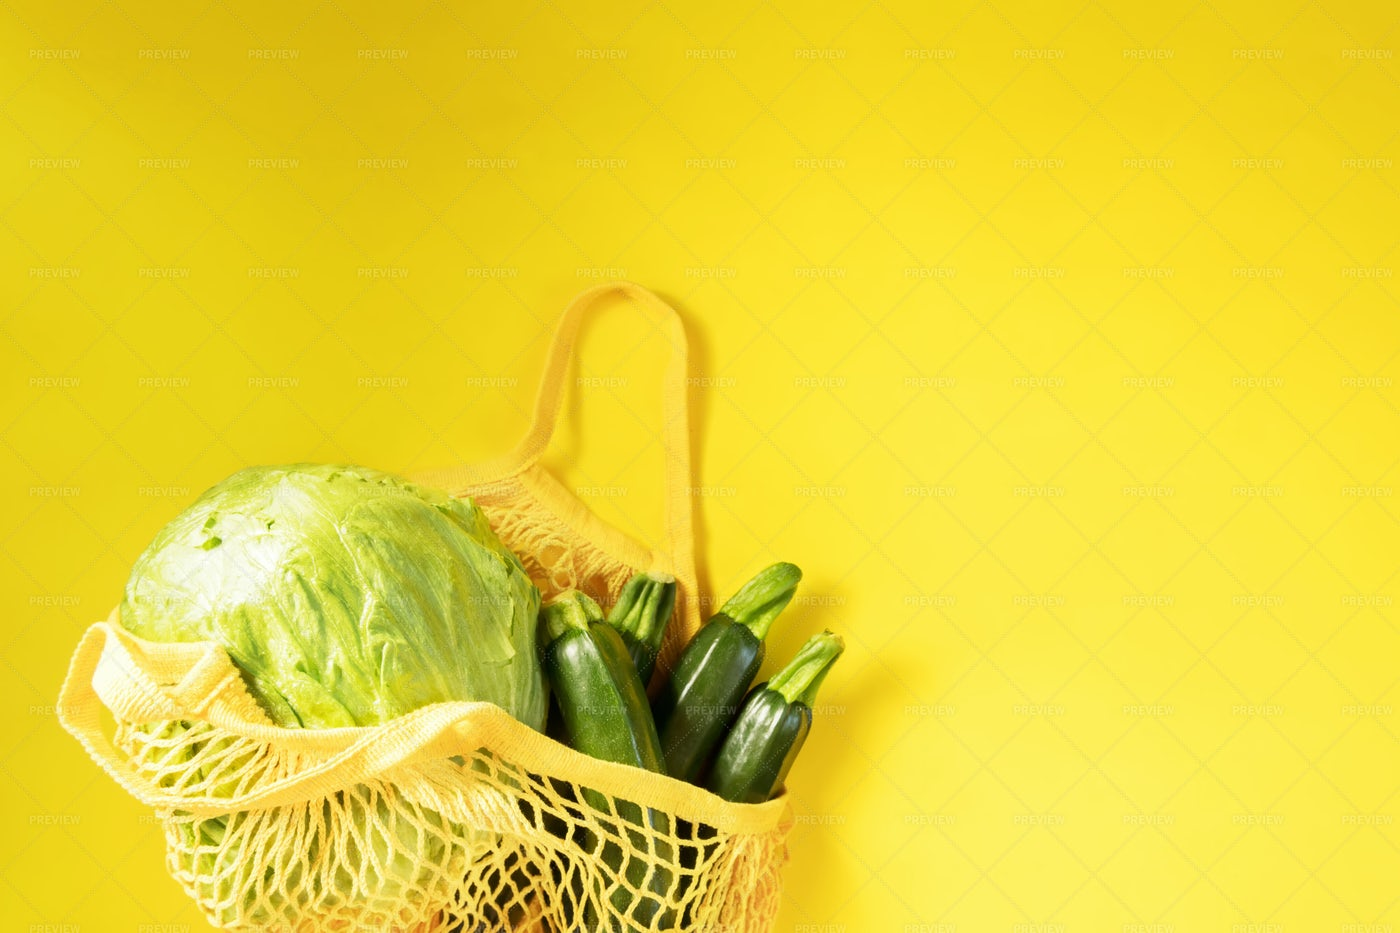 Mesh Bag And Green Vegetables Background: Stock Photos